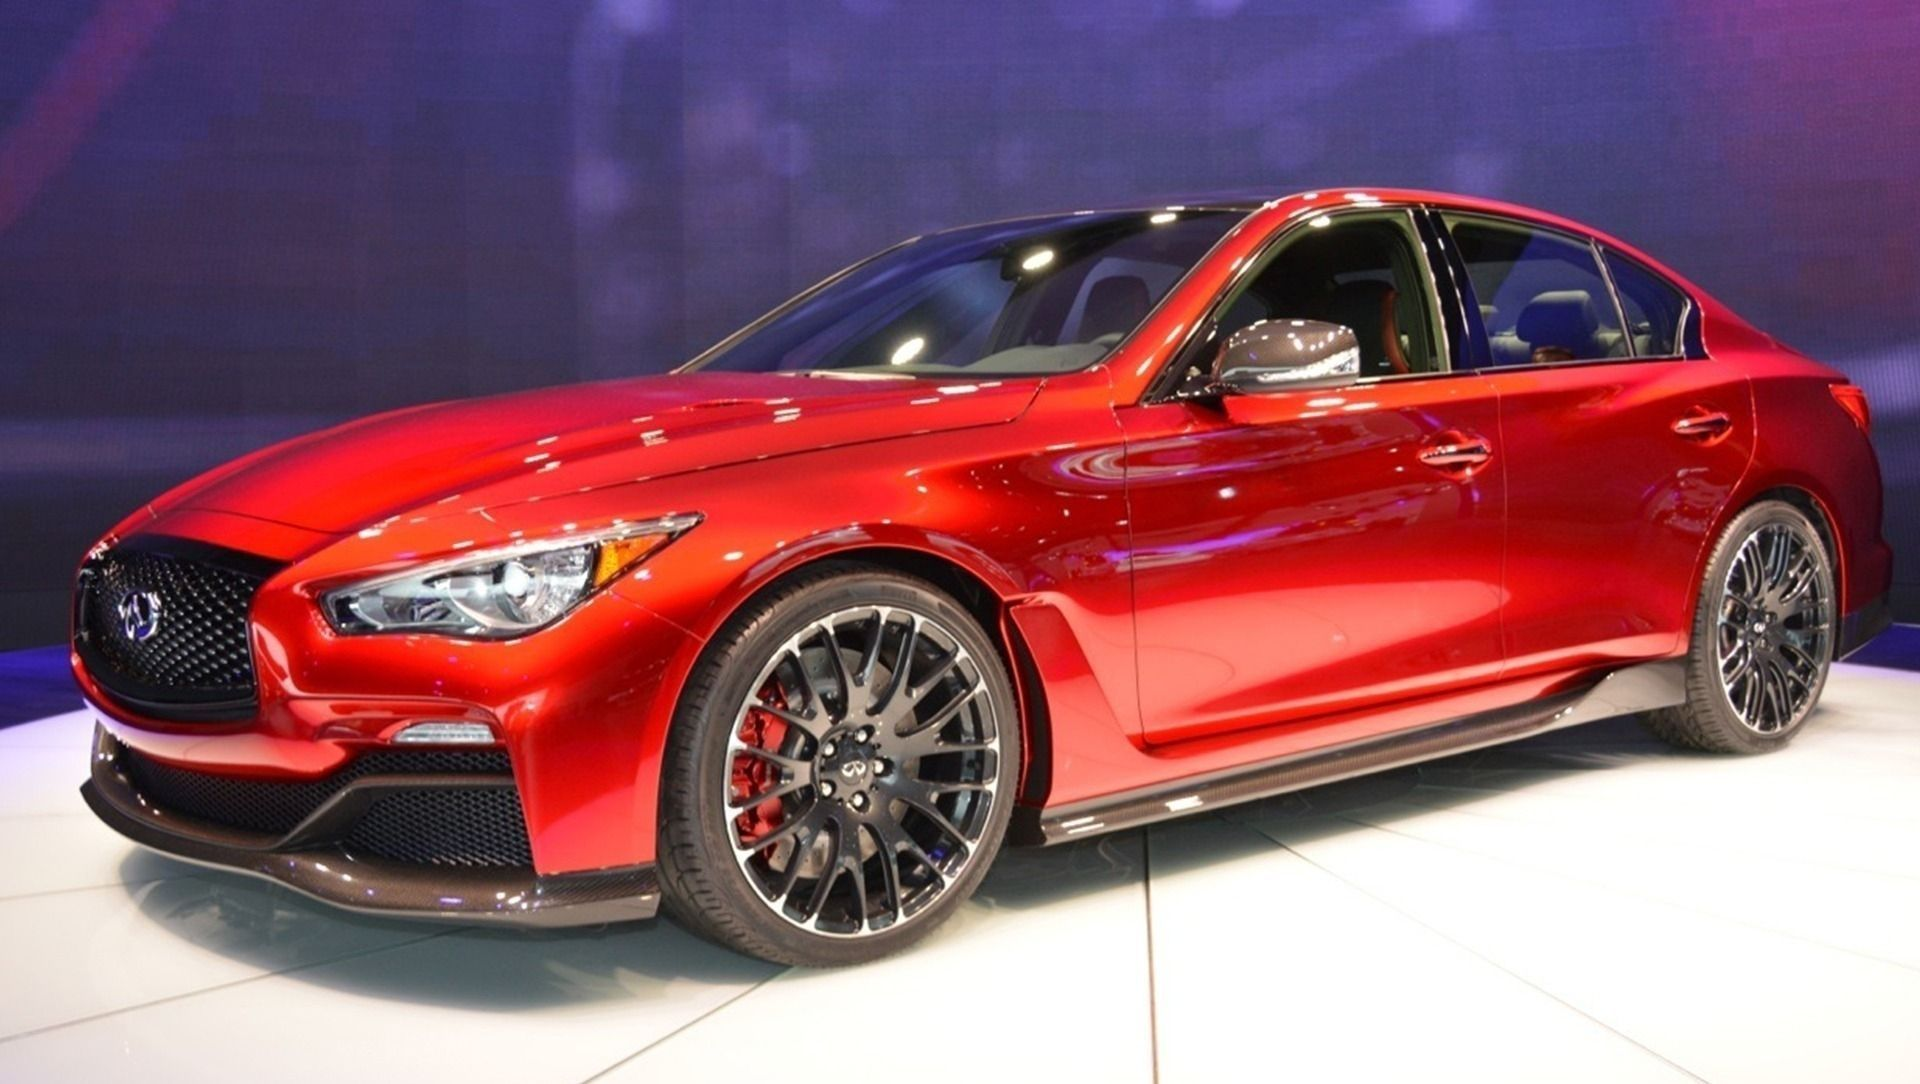 2019 Infiniti Q60 Red Sport Spy Shoot Cars Motorcycles